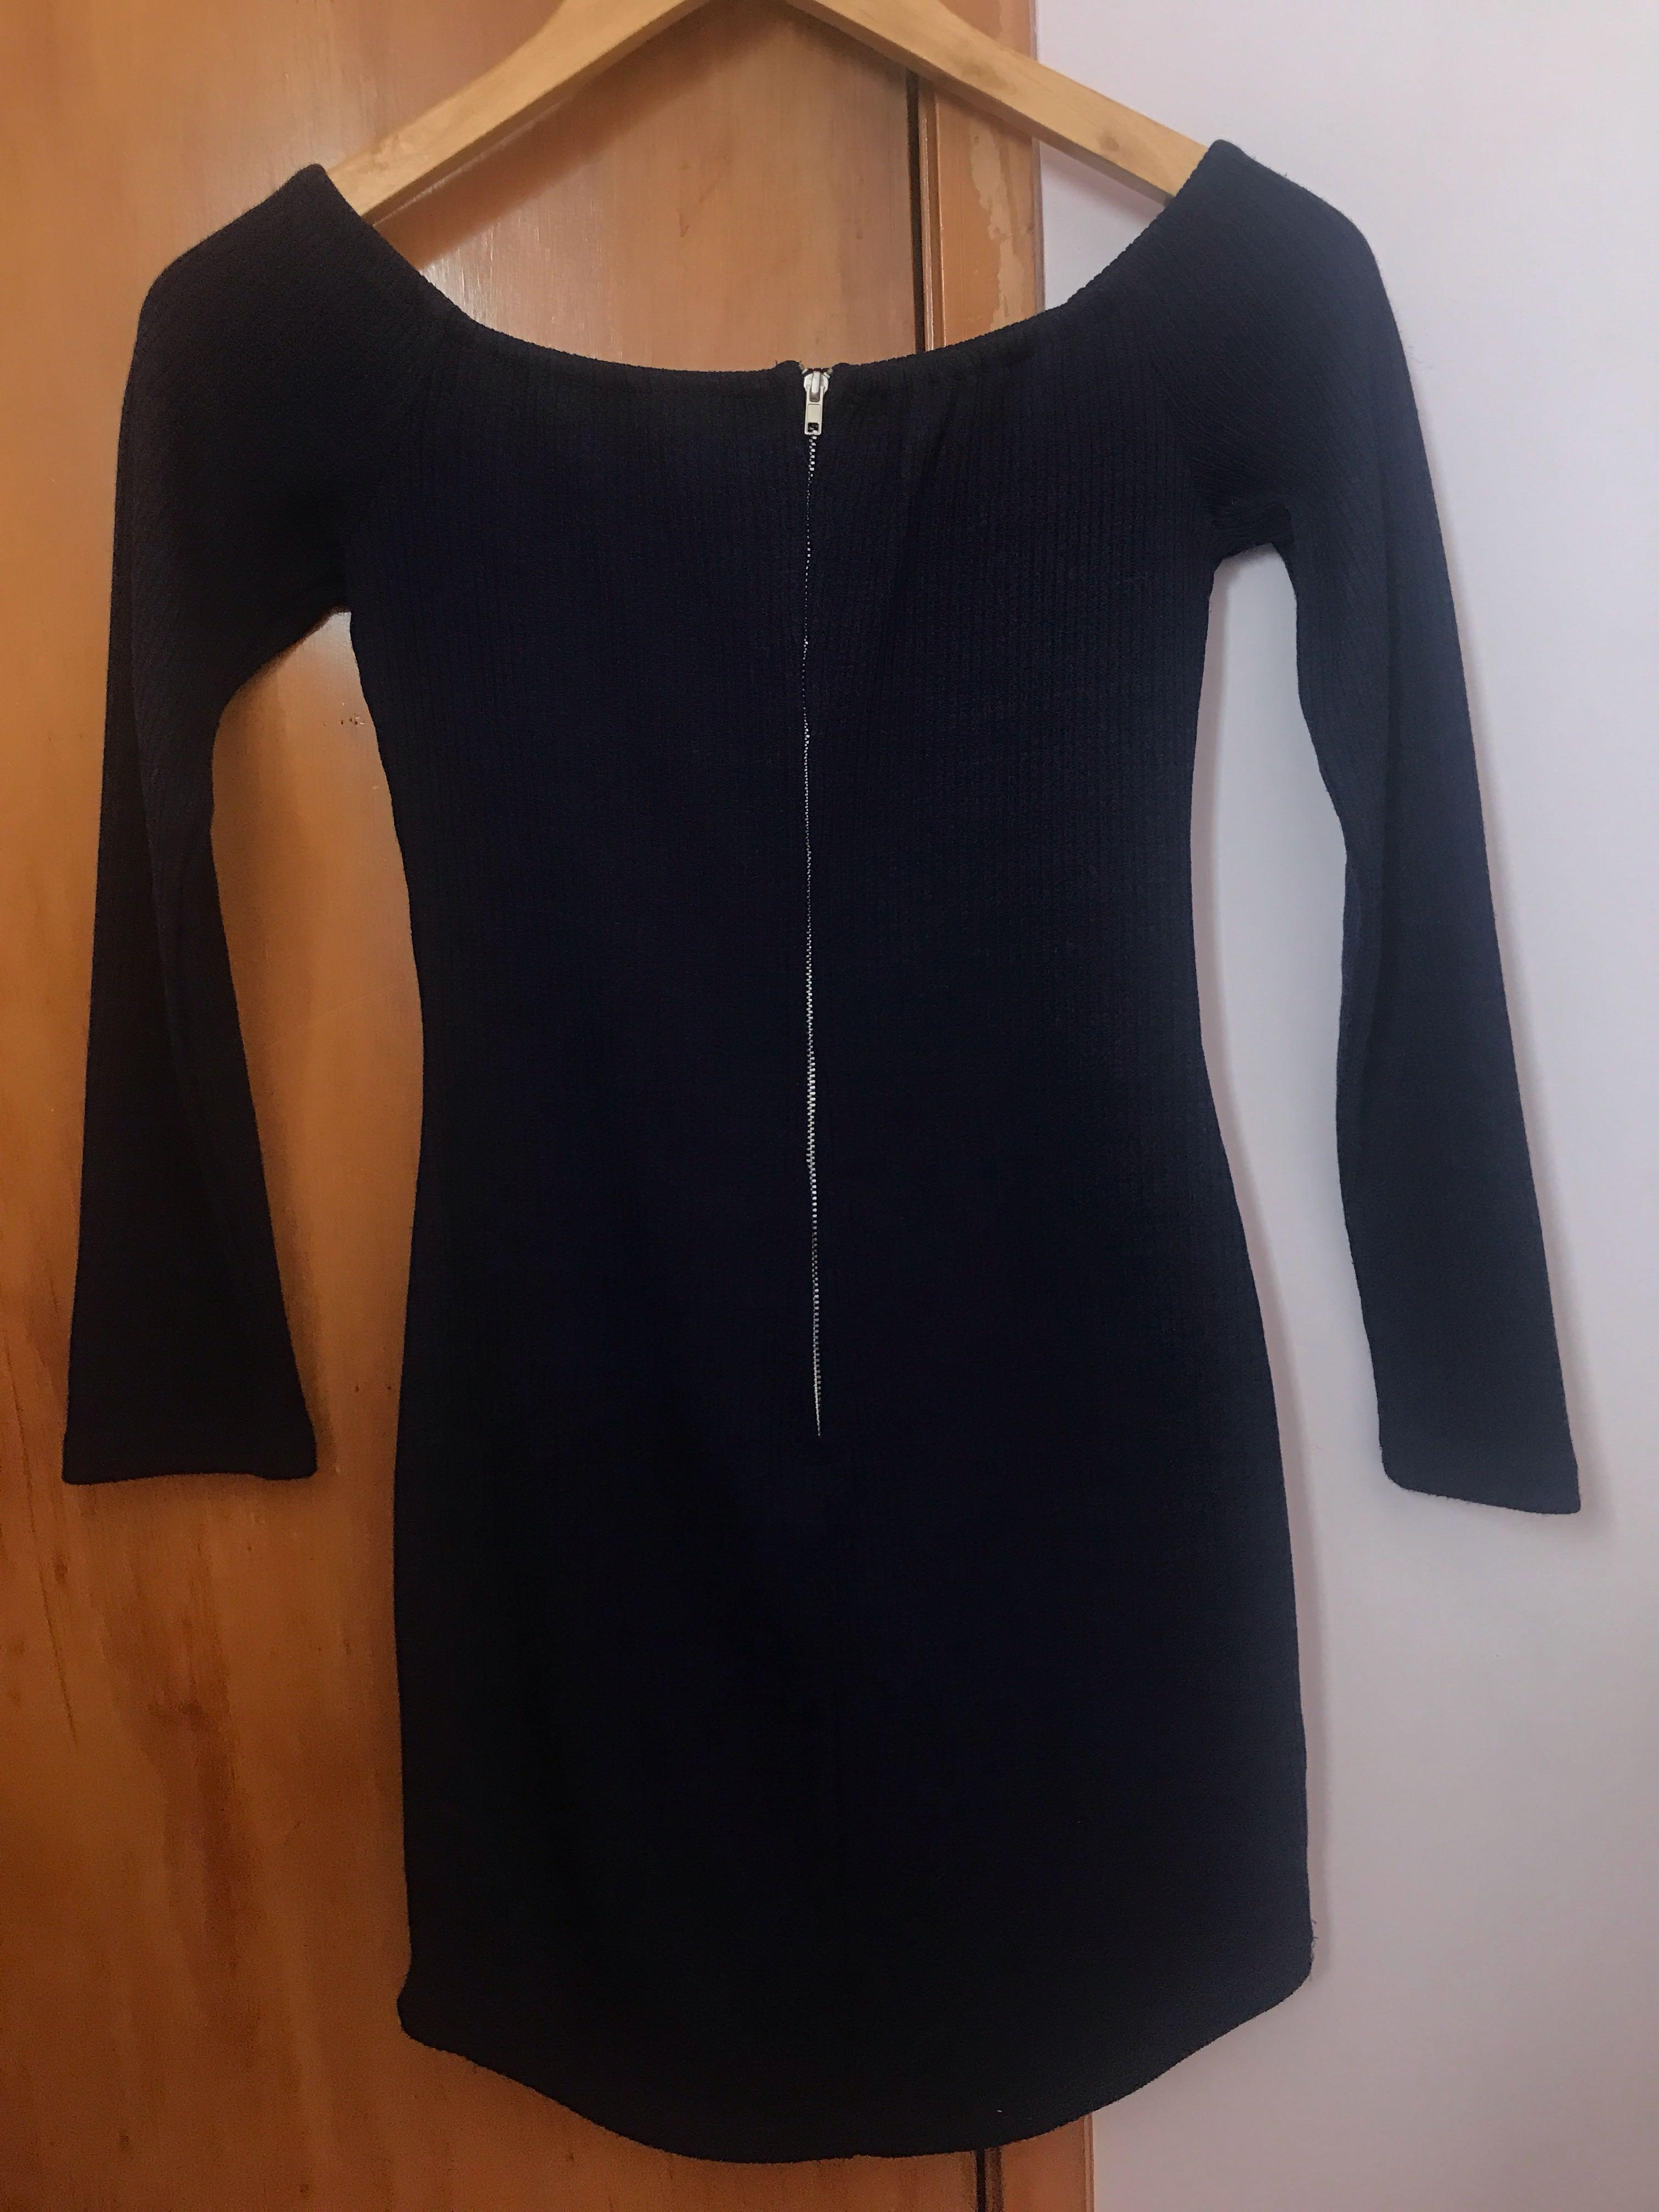 Gorgeous Navy Off the Shoulder Dress - size 6